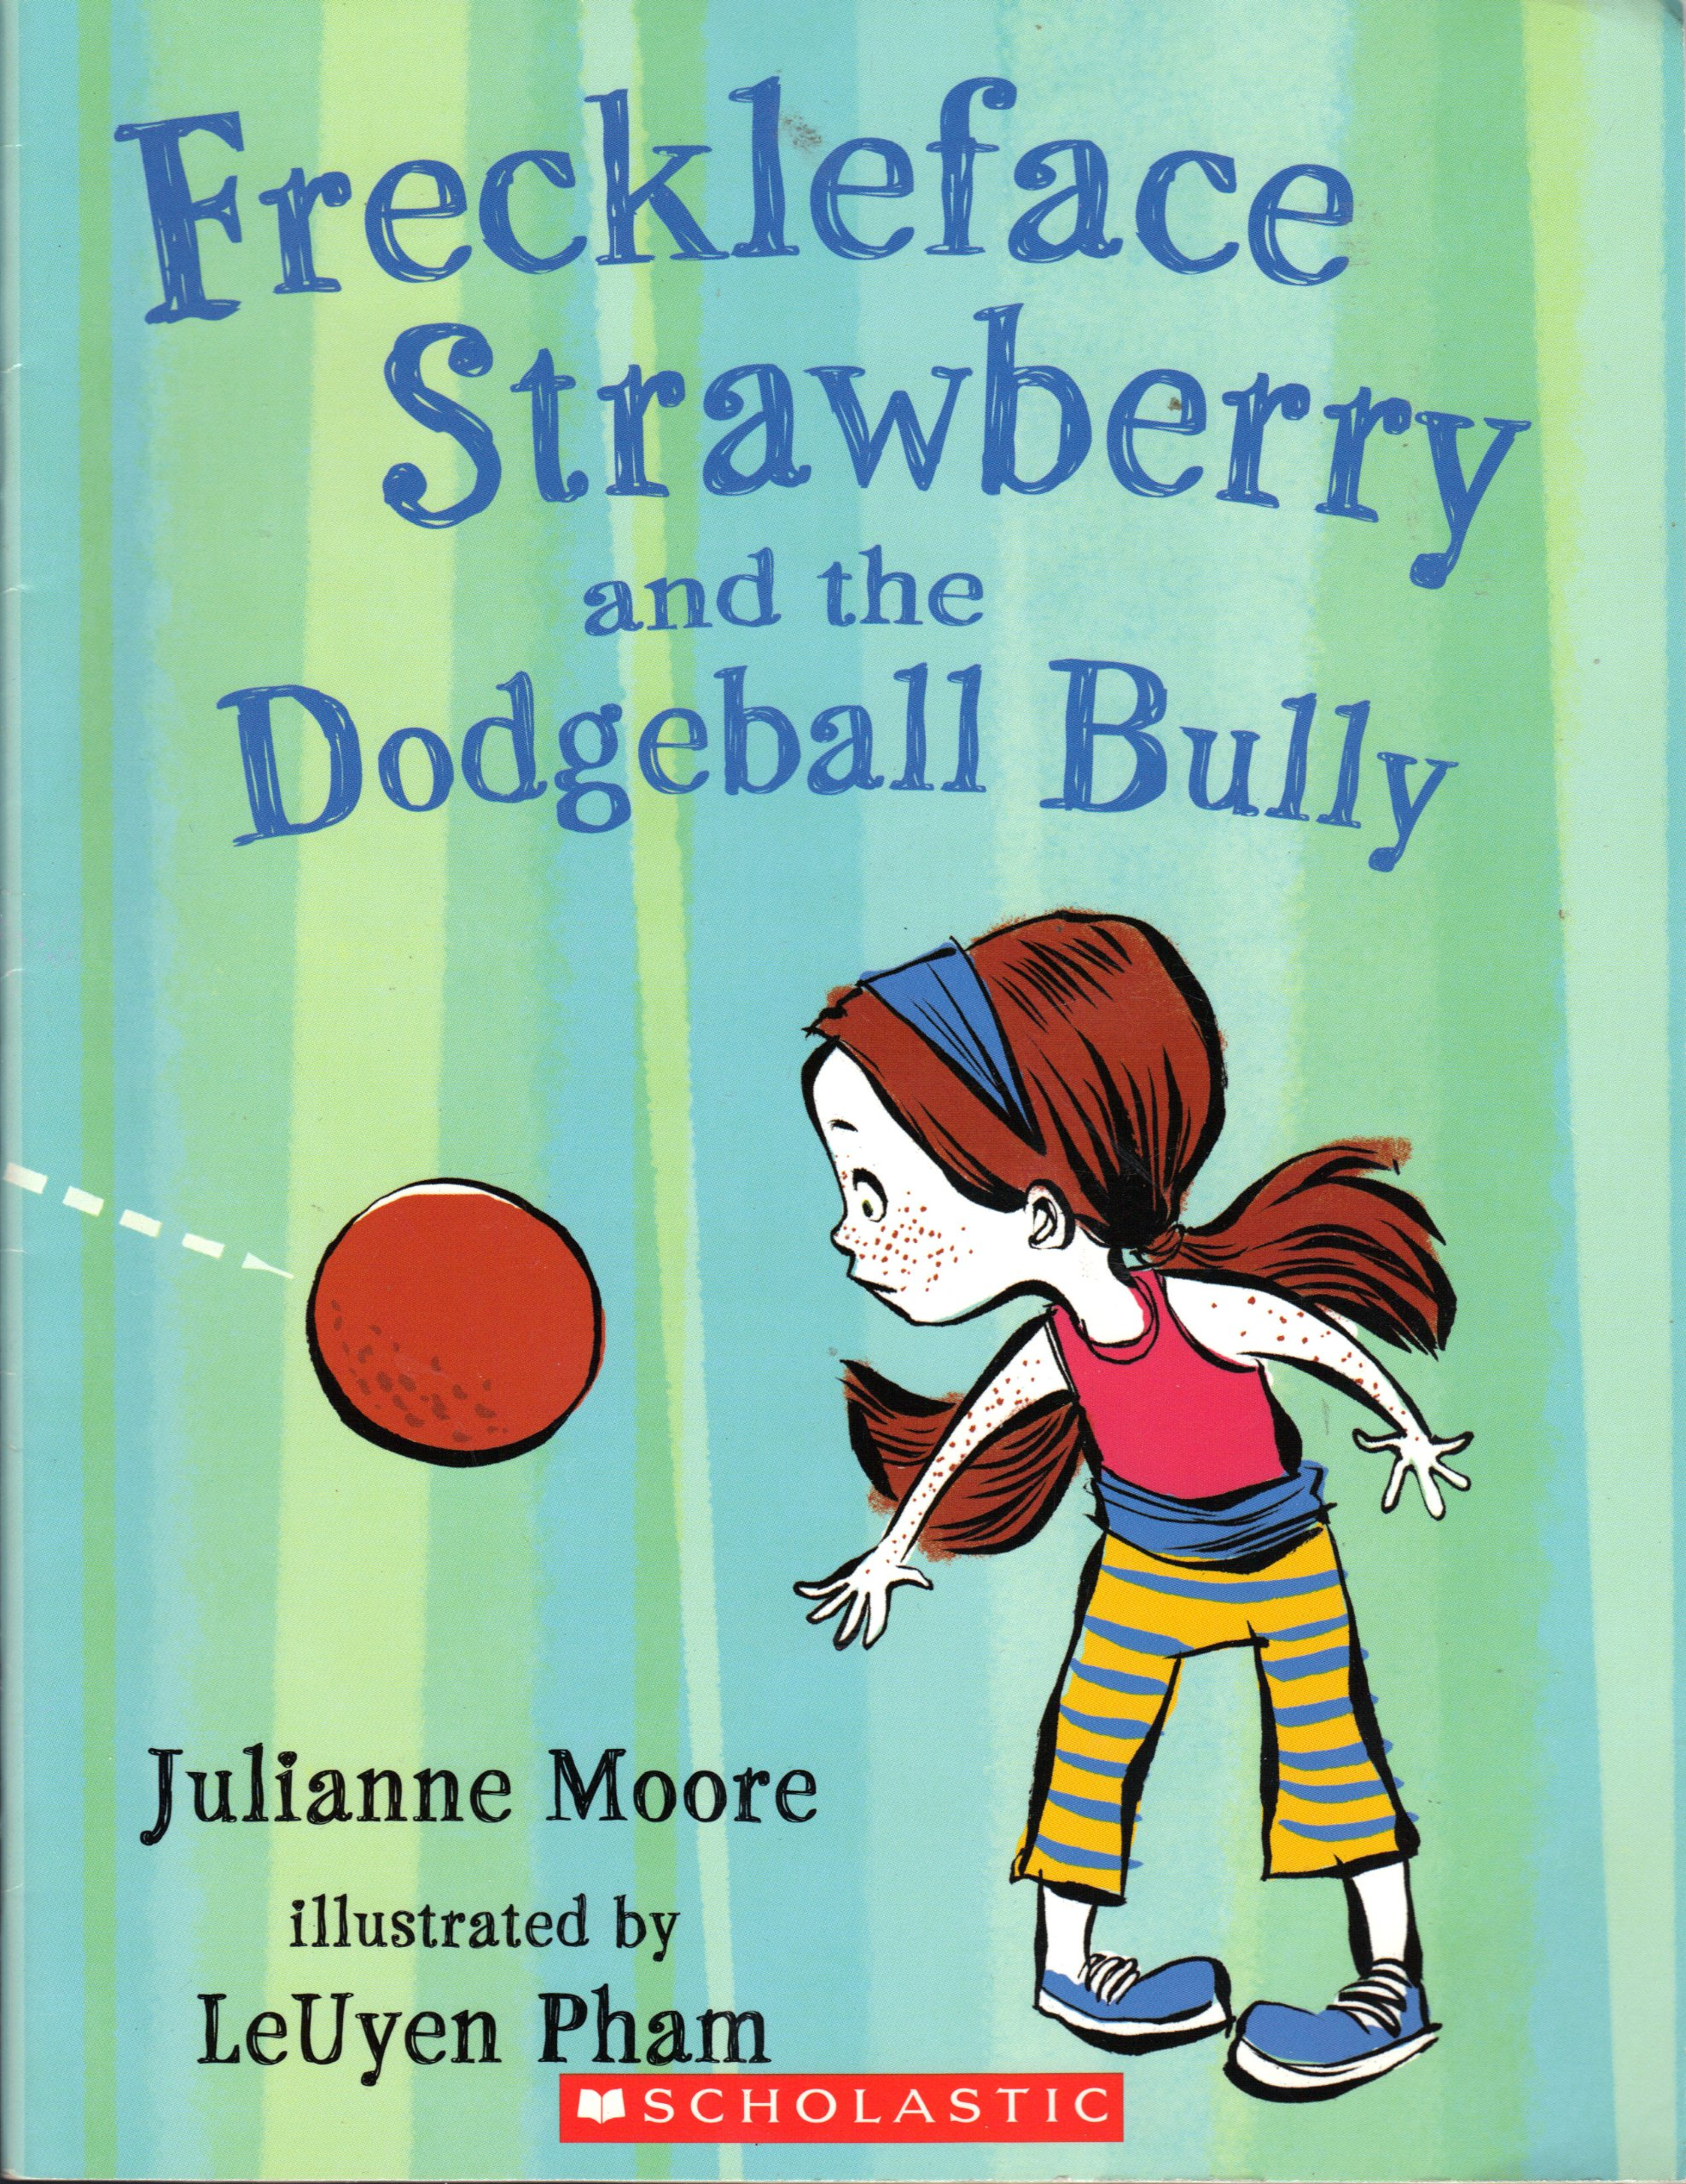 Download freckleface strawberry and the Dogeball bully pdf